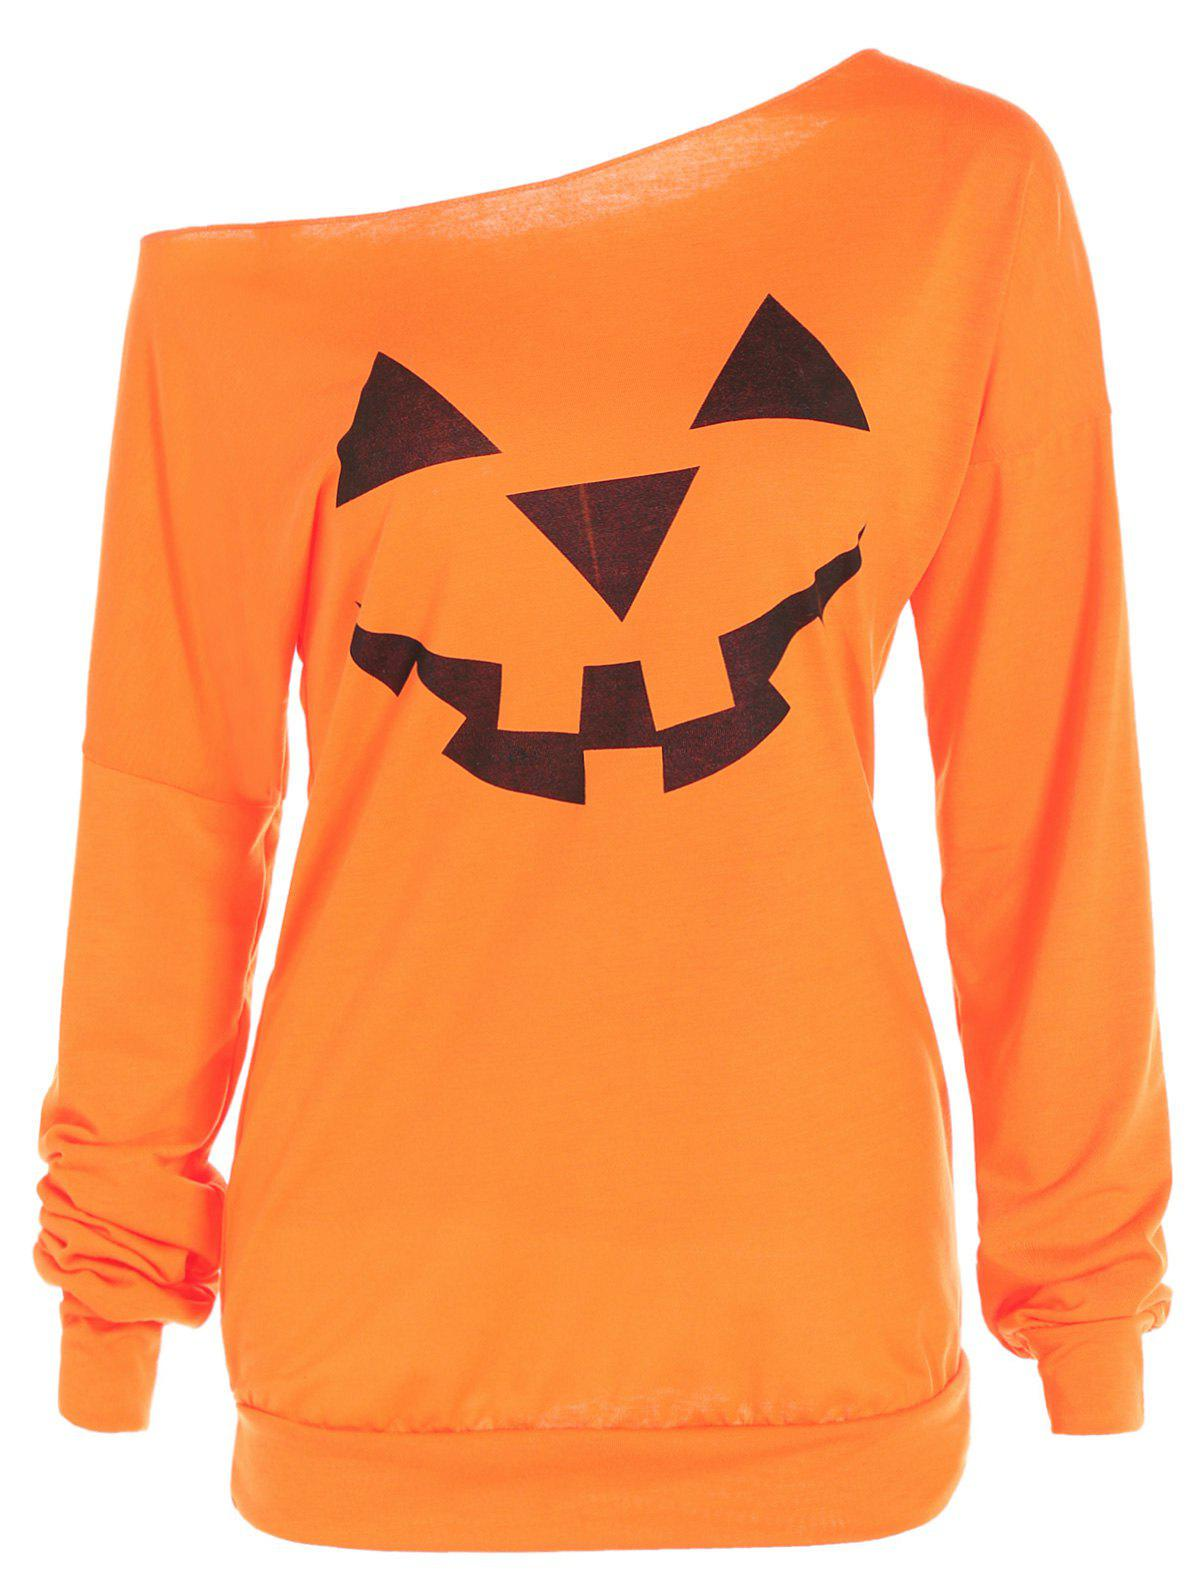 One Shoulder Pumpkin Print Halloween SweatshirtWOMEN<br><br>Size: XL; Color: YELLOW ORANGE; Material: Polyester; Shirt Length: Regular; Sleeve Length: Full; Style: Fashion; Pattern Style: Print; Season: Fall,Spring; Weight: 0.219kg; Package Contents: 1 x Sweatshirt;